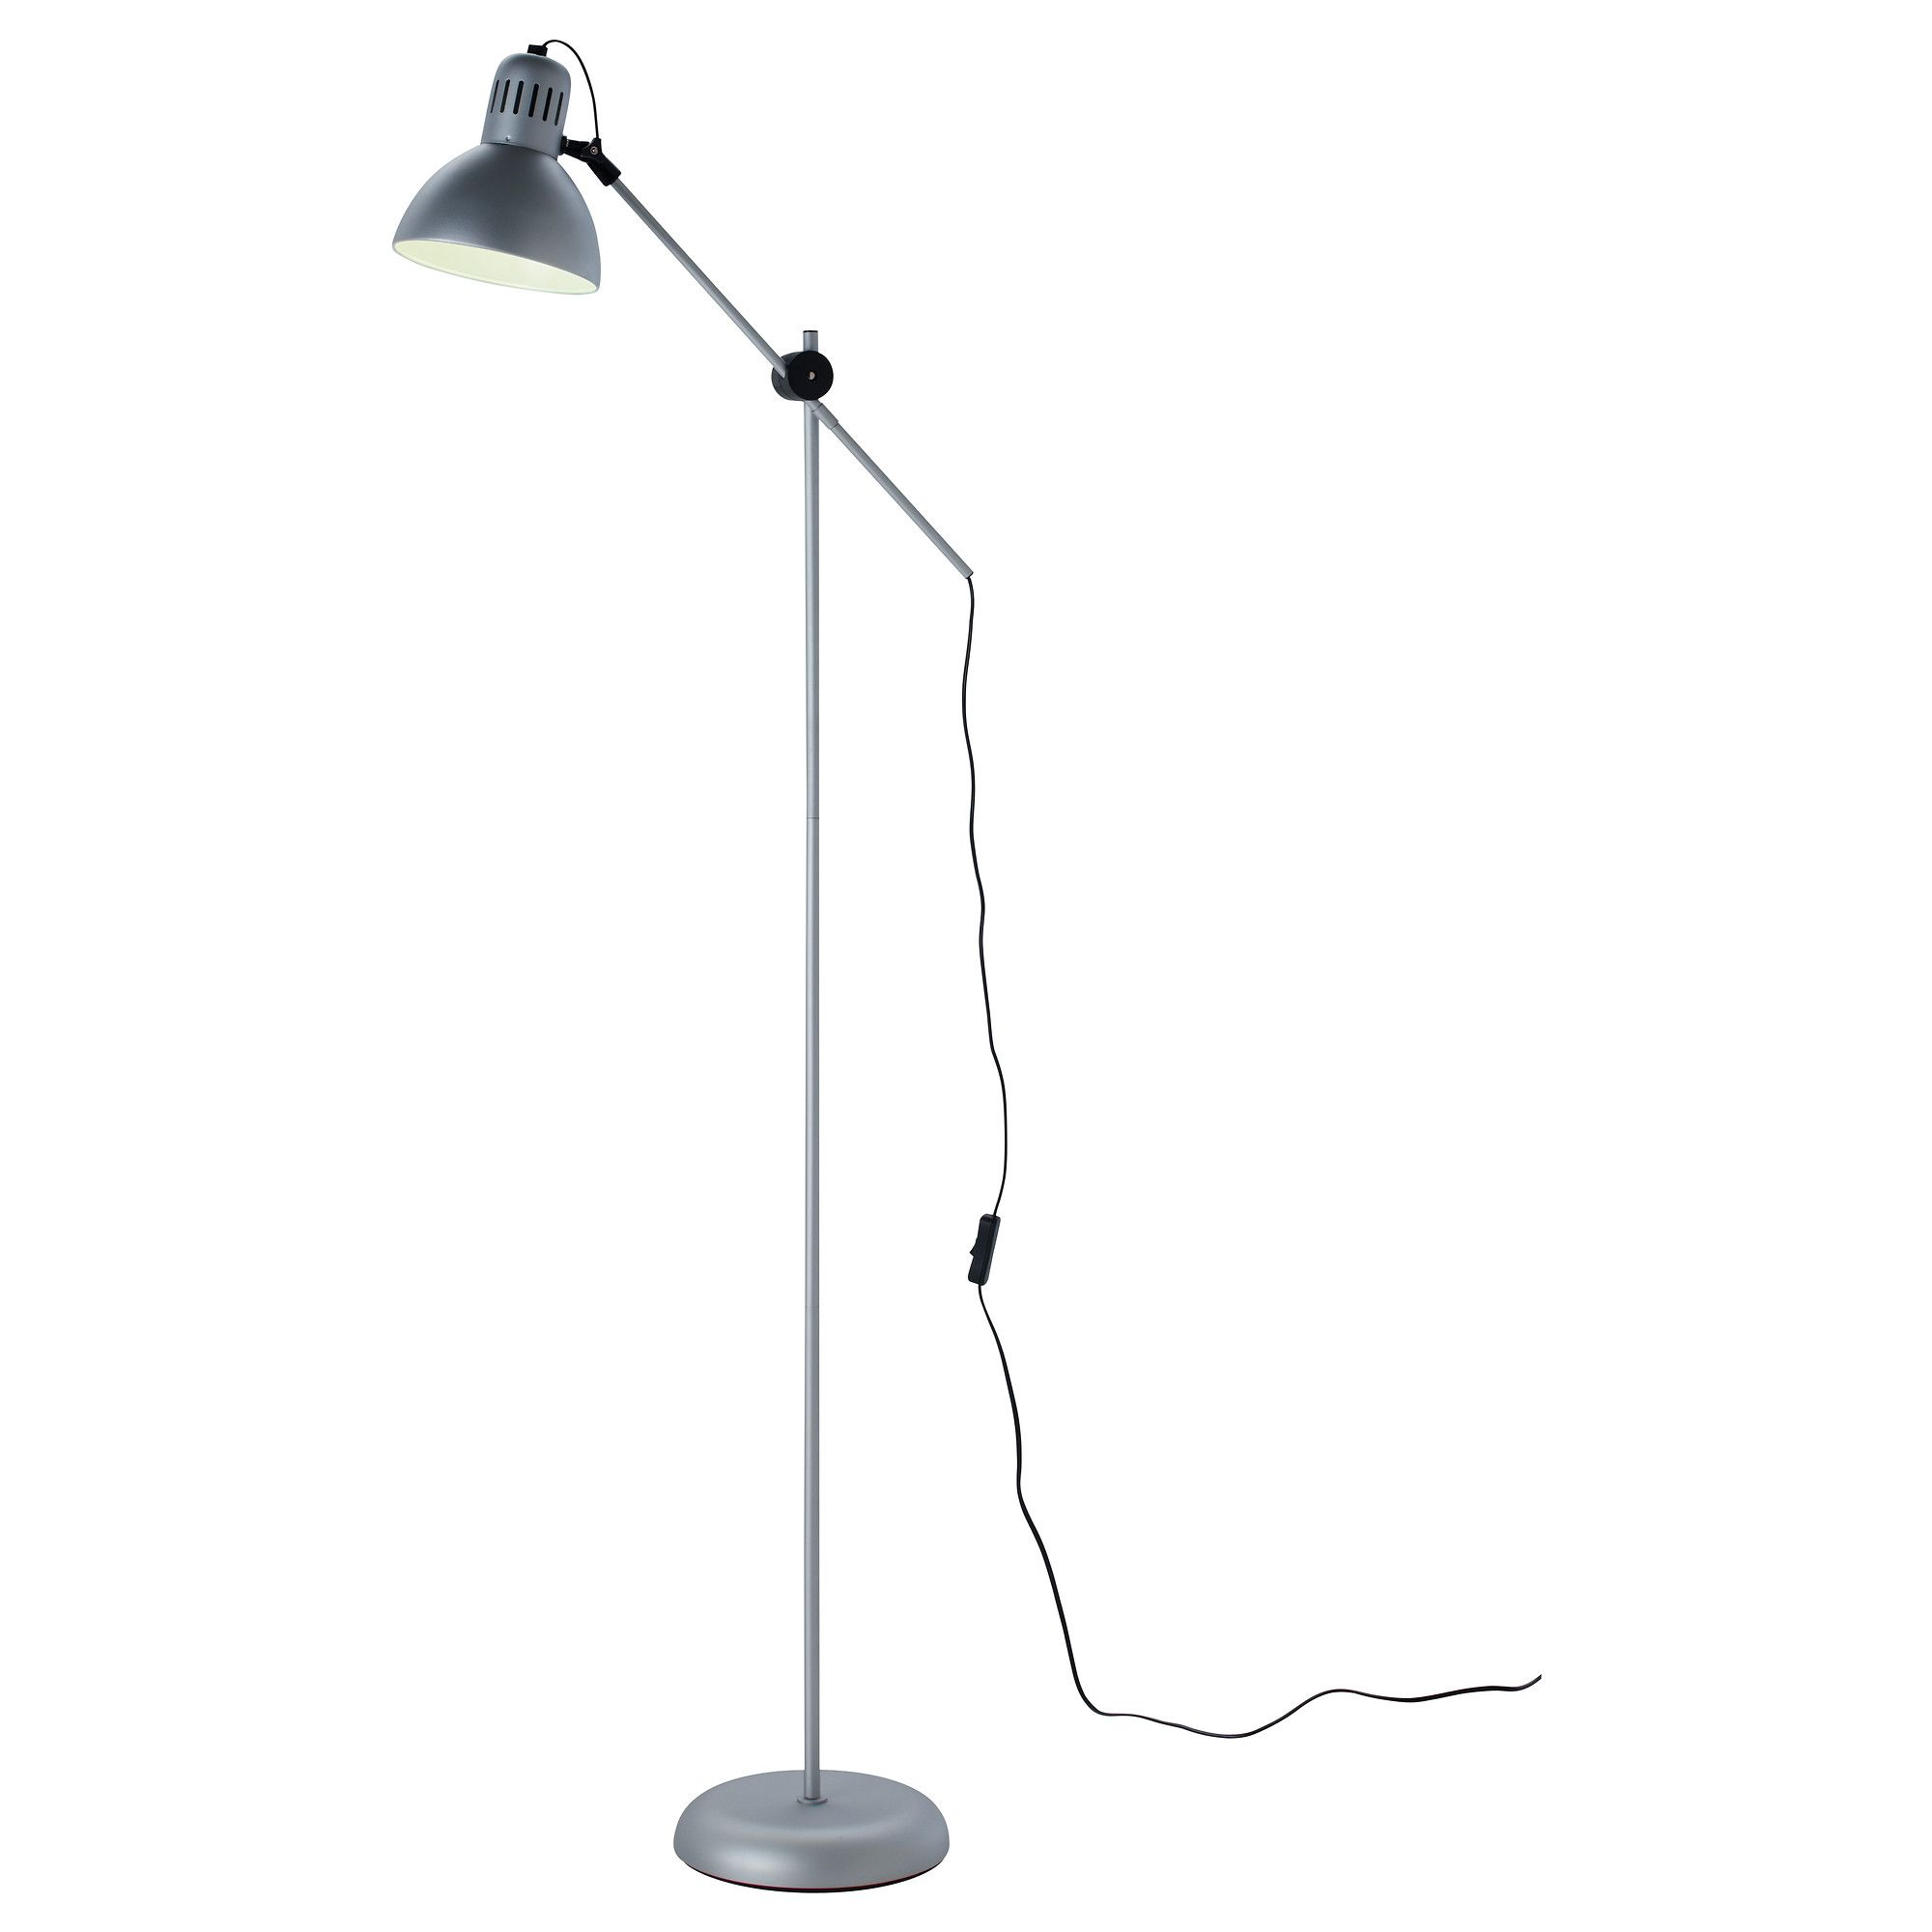 Lampadaire Salon Ikea Tertial Floor Reading Lamp Ikea Decor Of Sorts Pinterest